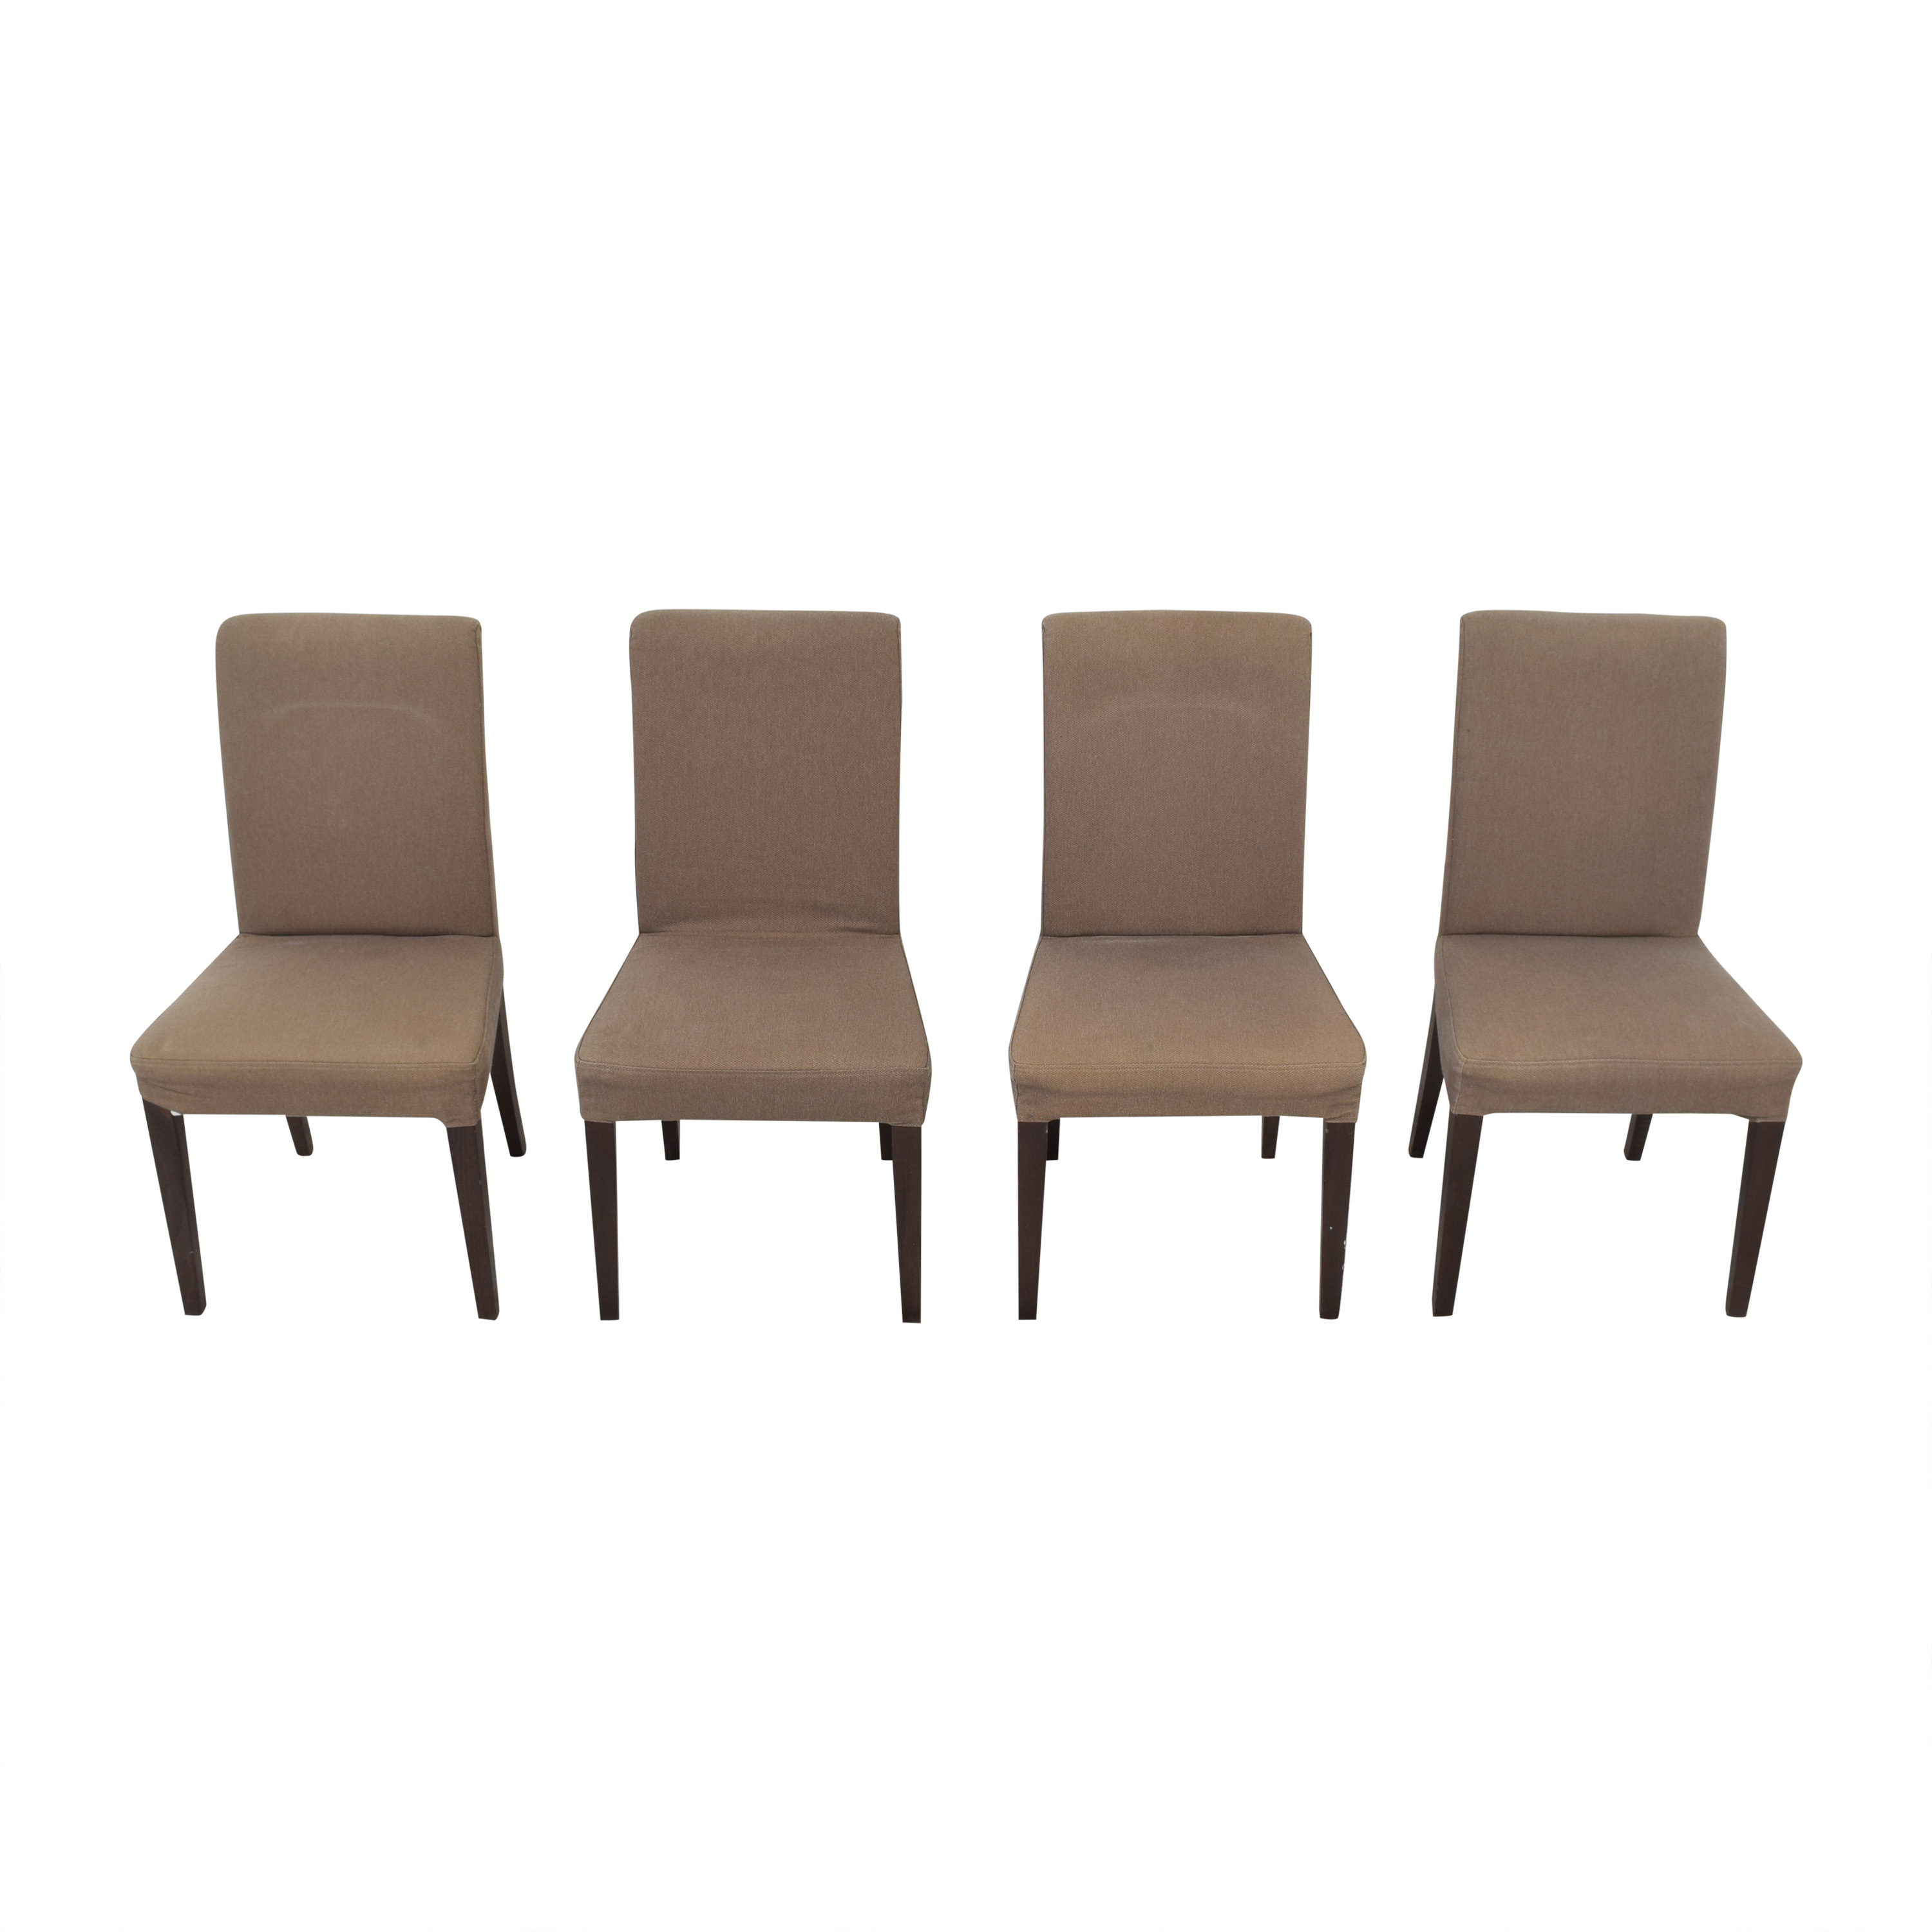 IKEA IKEA Henriksdal Dining Chair dimensions